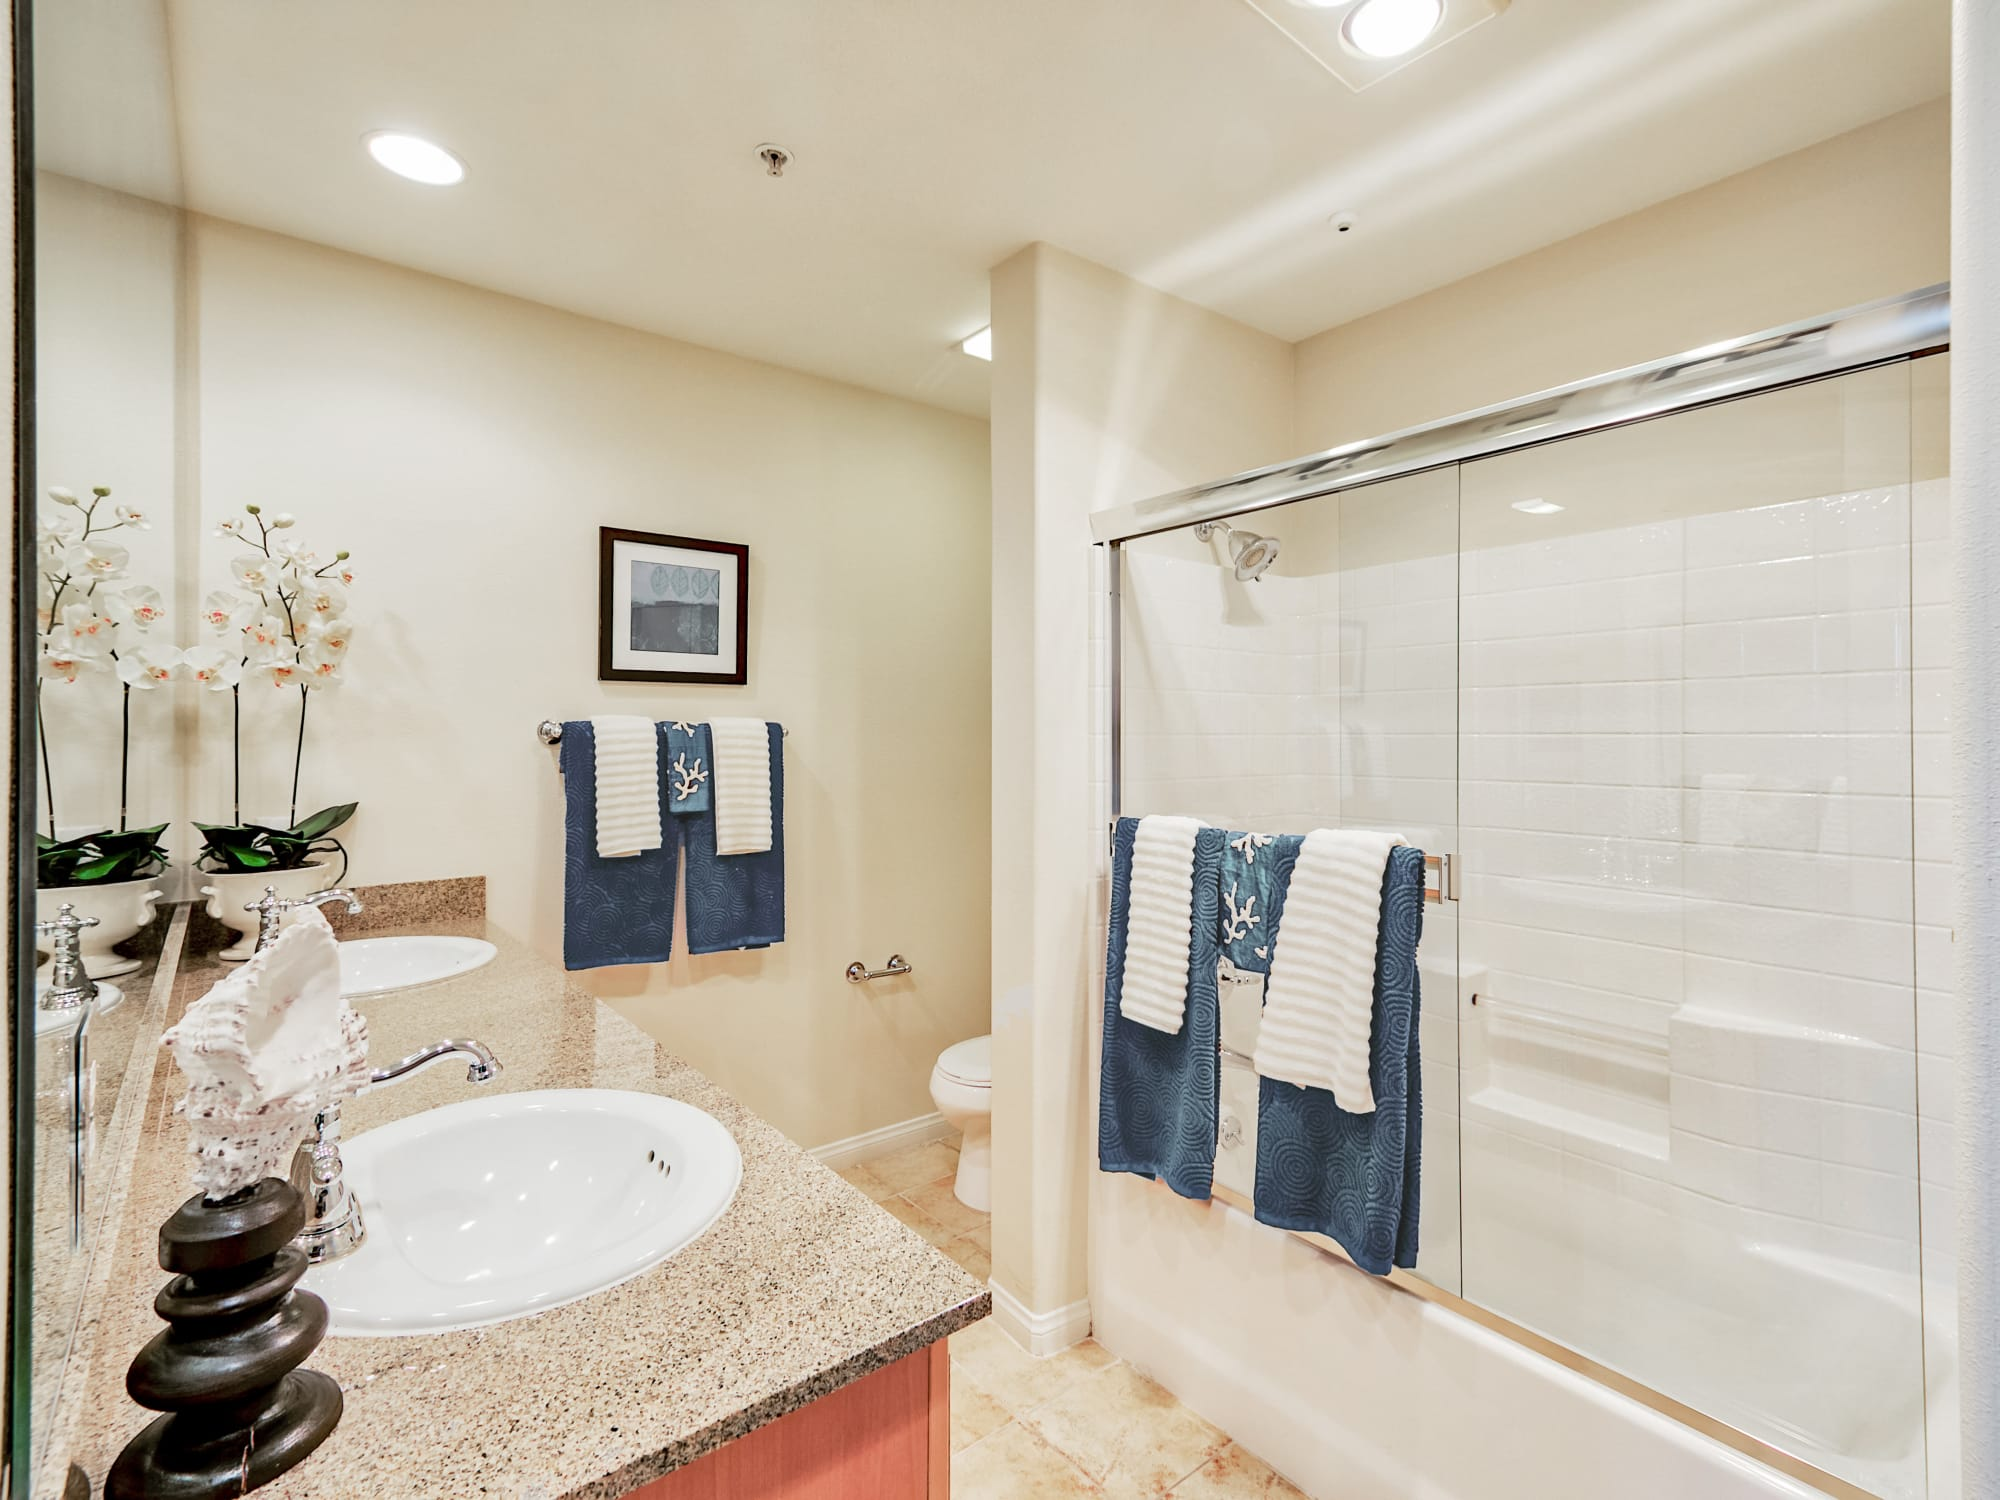 Spacious bathroom with granite countertop, double sink and shower at The Villa at Marina Harbor in Marina del Rey, California